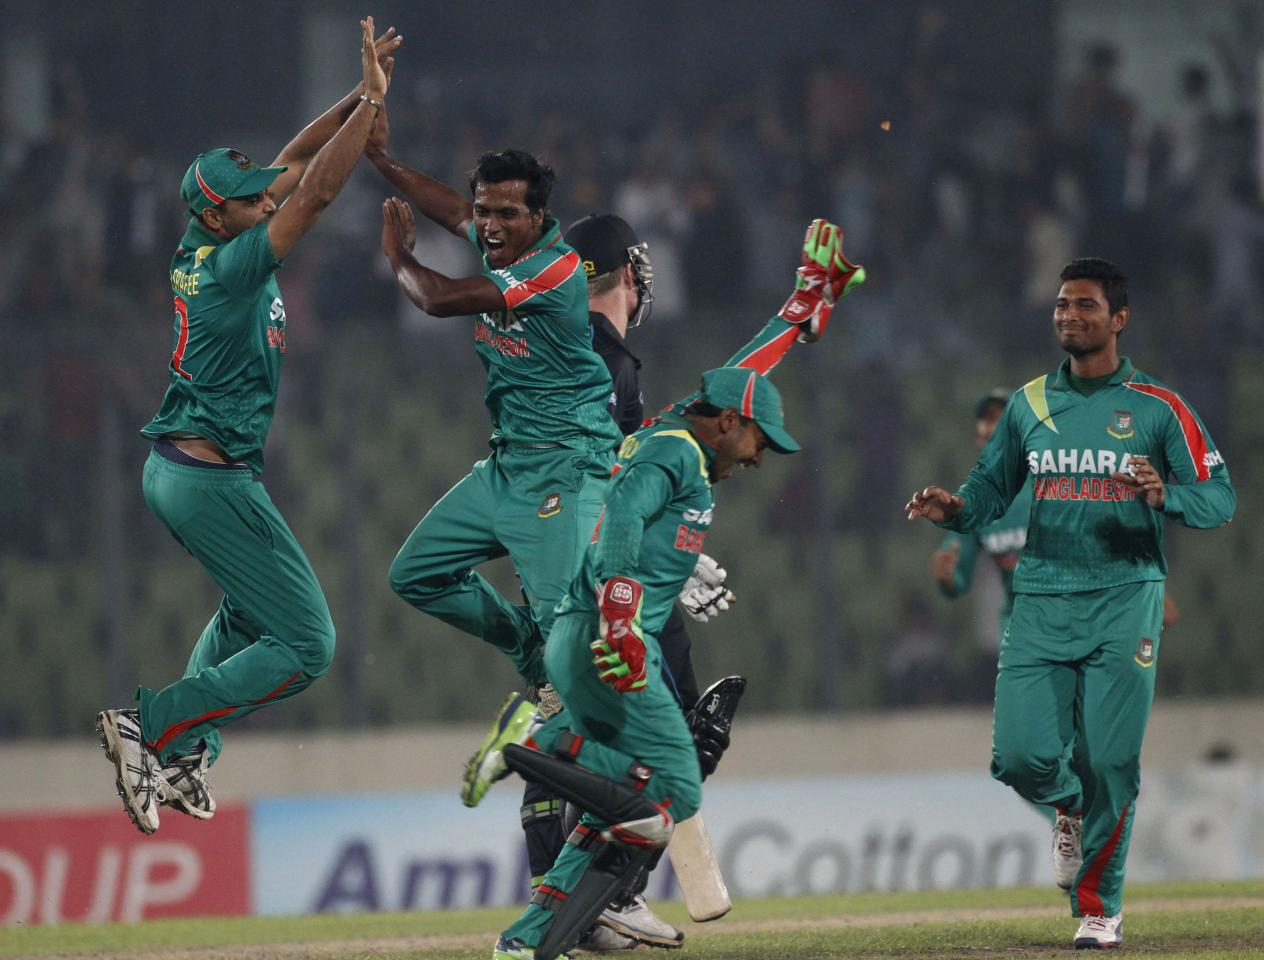 Bangladesh's Rubel Hossain (2nd L) celebrates with teammates after he dismissed New Zealand's James Neesham as he made a hattrick during their first one-day international (ODI) cricket match in Dhaka October 29, 2013. REUTERS/Andrew Biraj (BANGLADESH - Tags: SPORT CRICKET TPX IMAGES OF THE DAY)